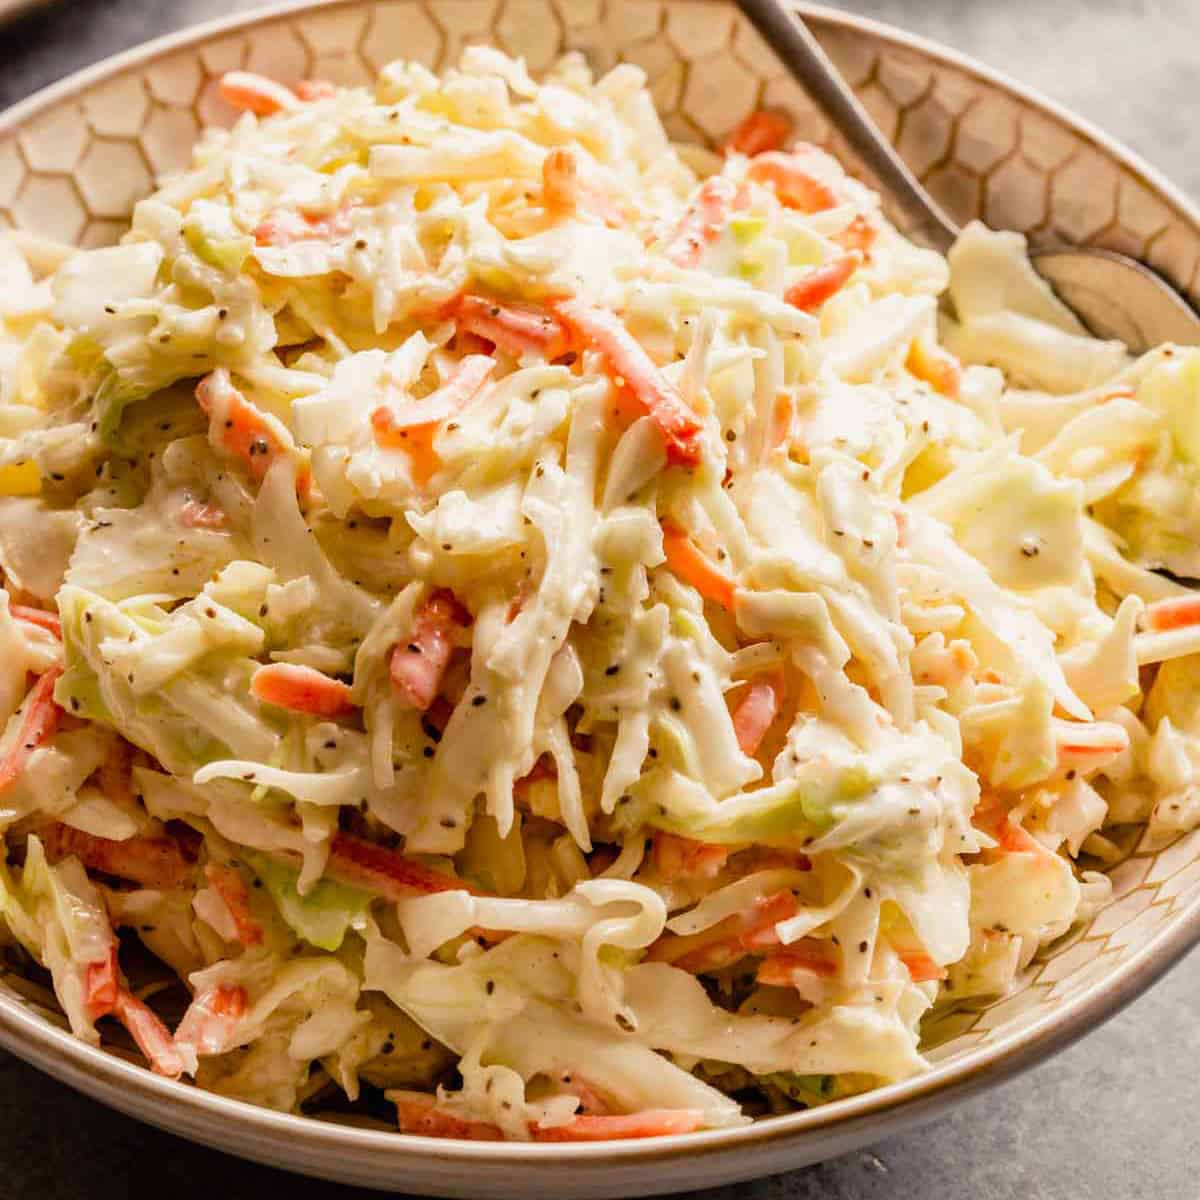 A white bowl with creamy homemade coleslaw and a silver spoon on the right side of the bowl.